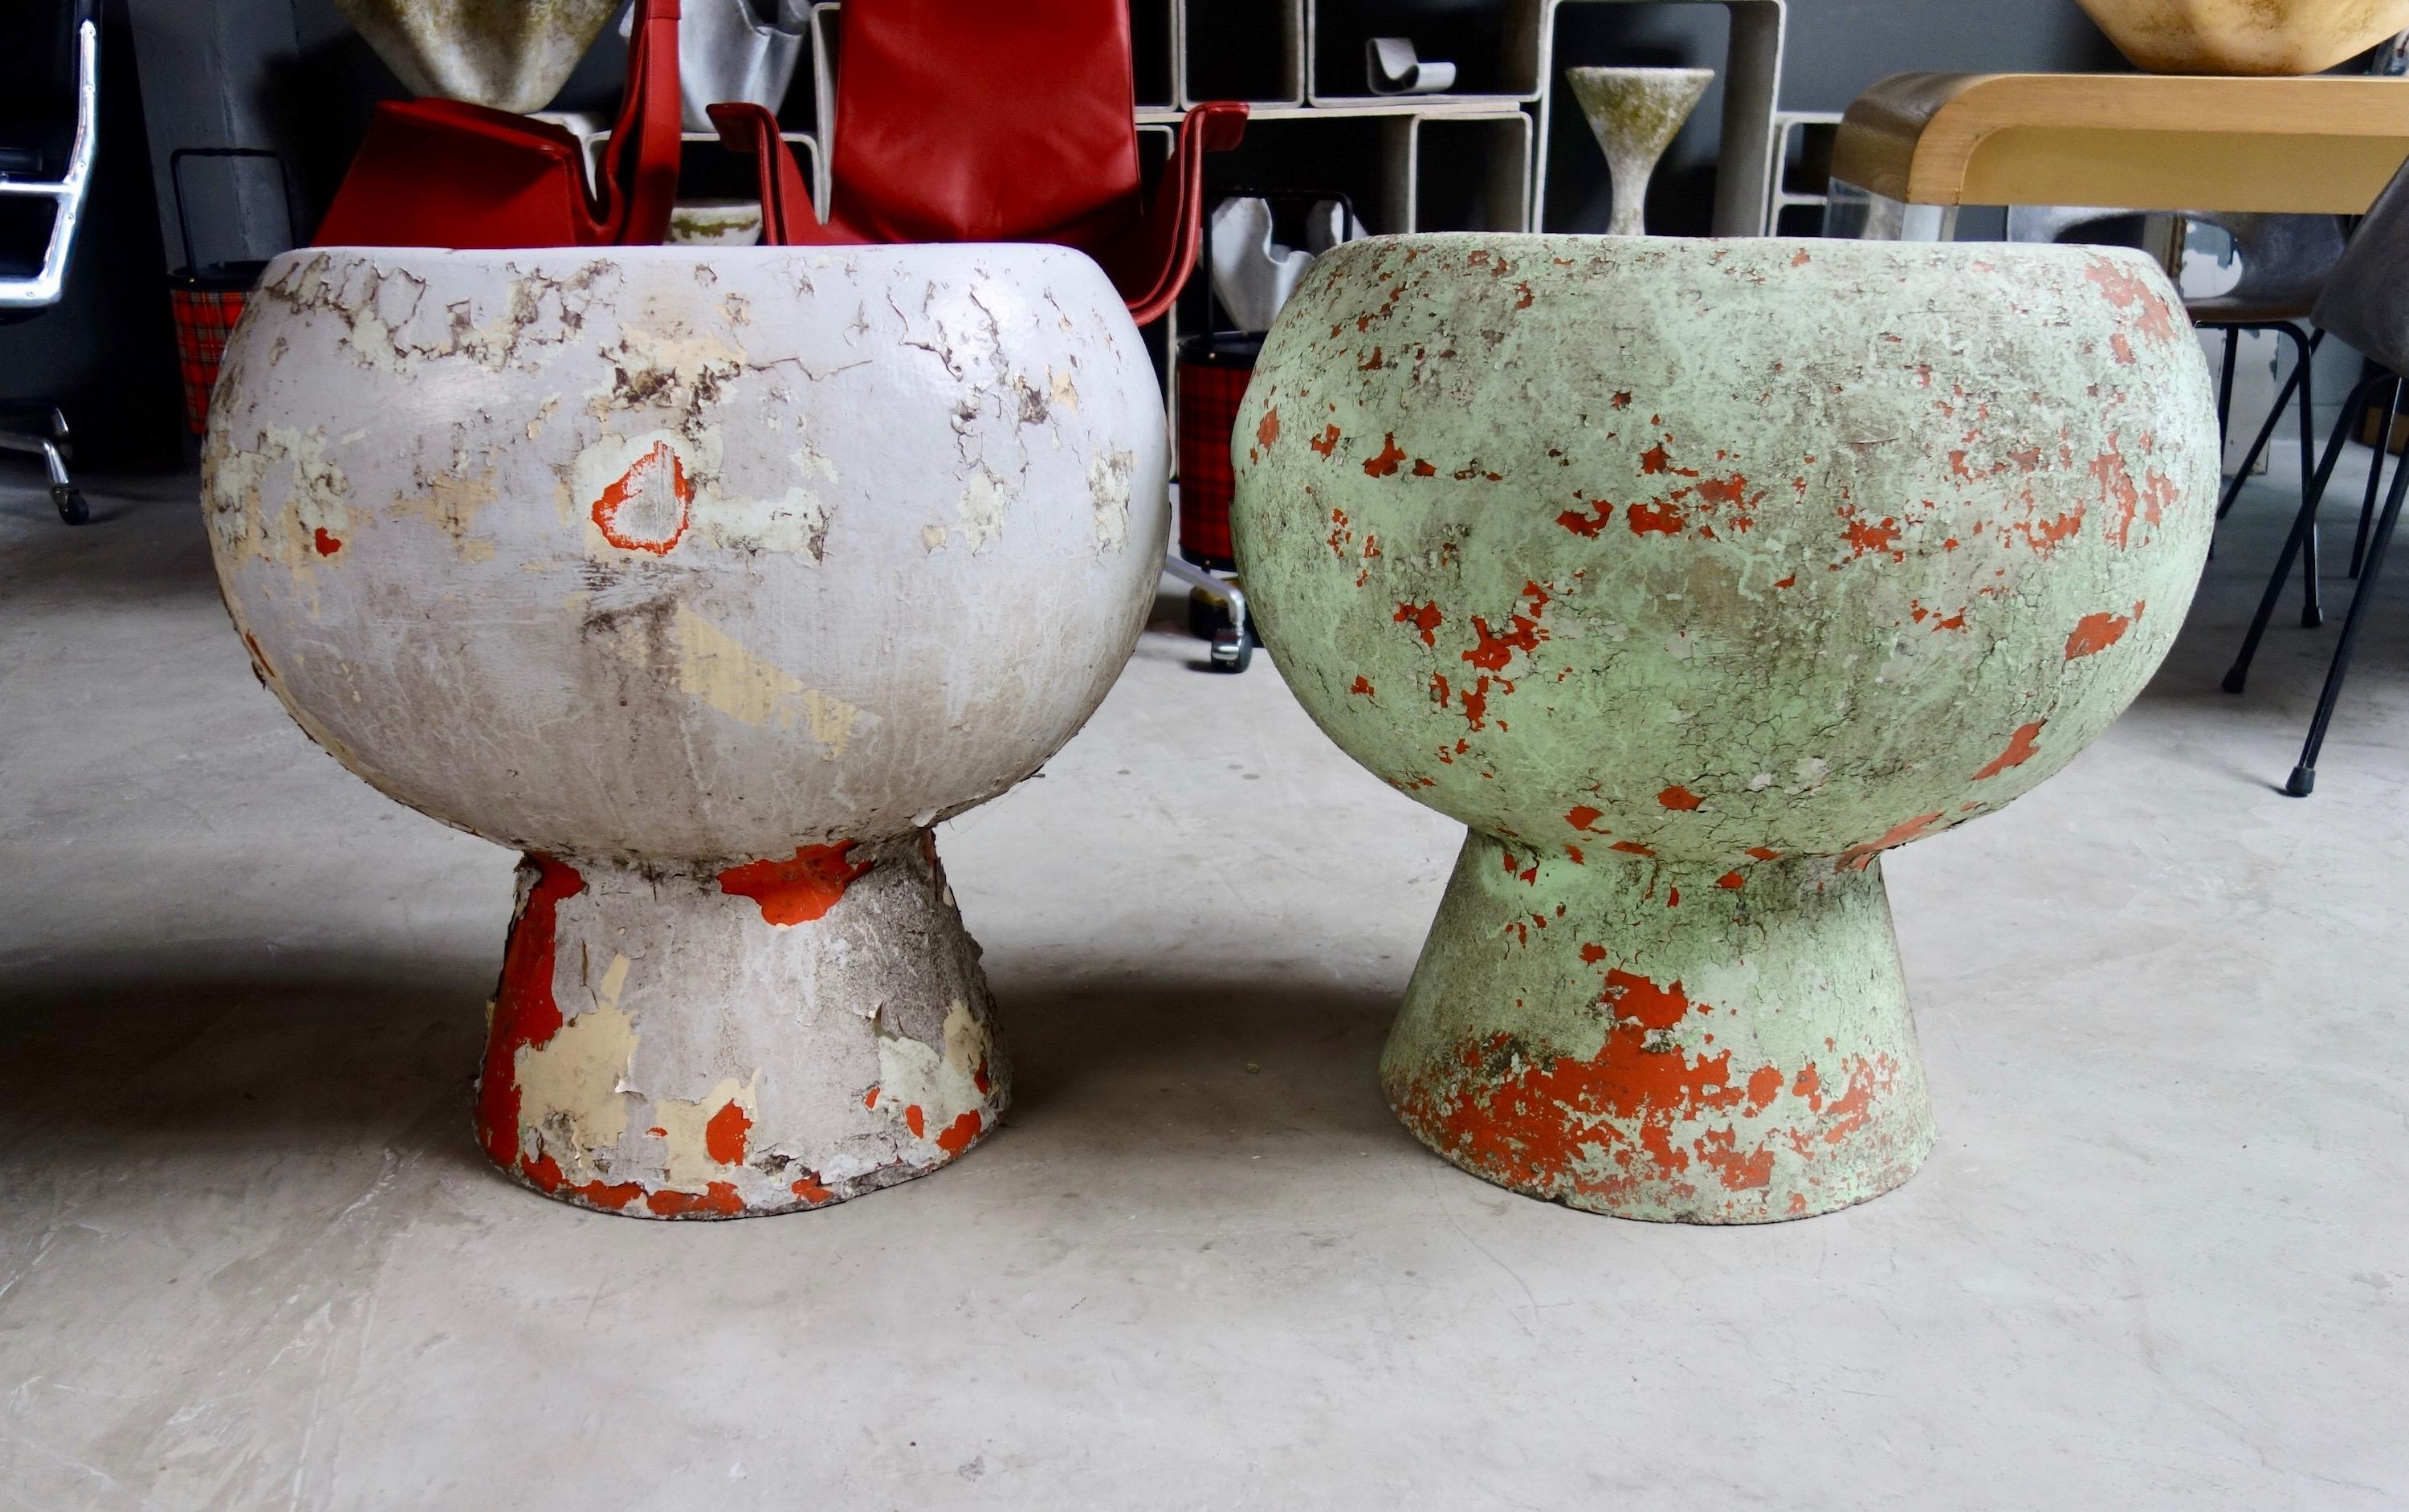 Rare Pair of Willy Guhl Concrete Mushroom Chairs For Sale 1 & Rare Pair of Willy Guhl Concrete Mushroom Chairs For Sale at 1stdibs